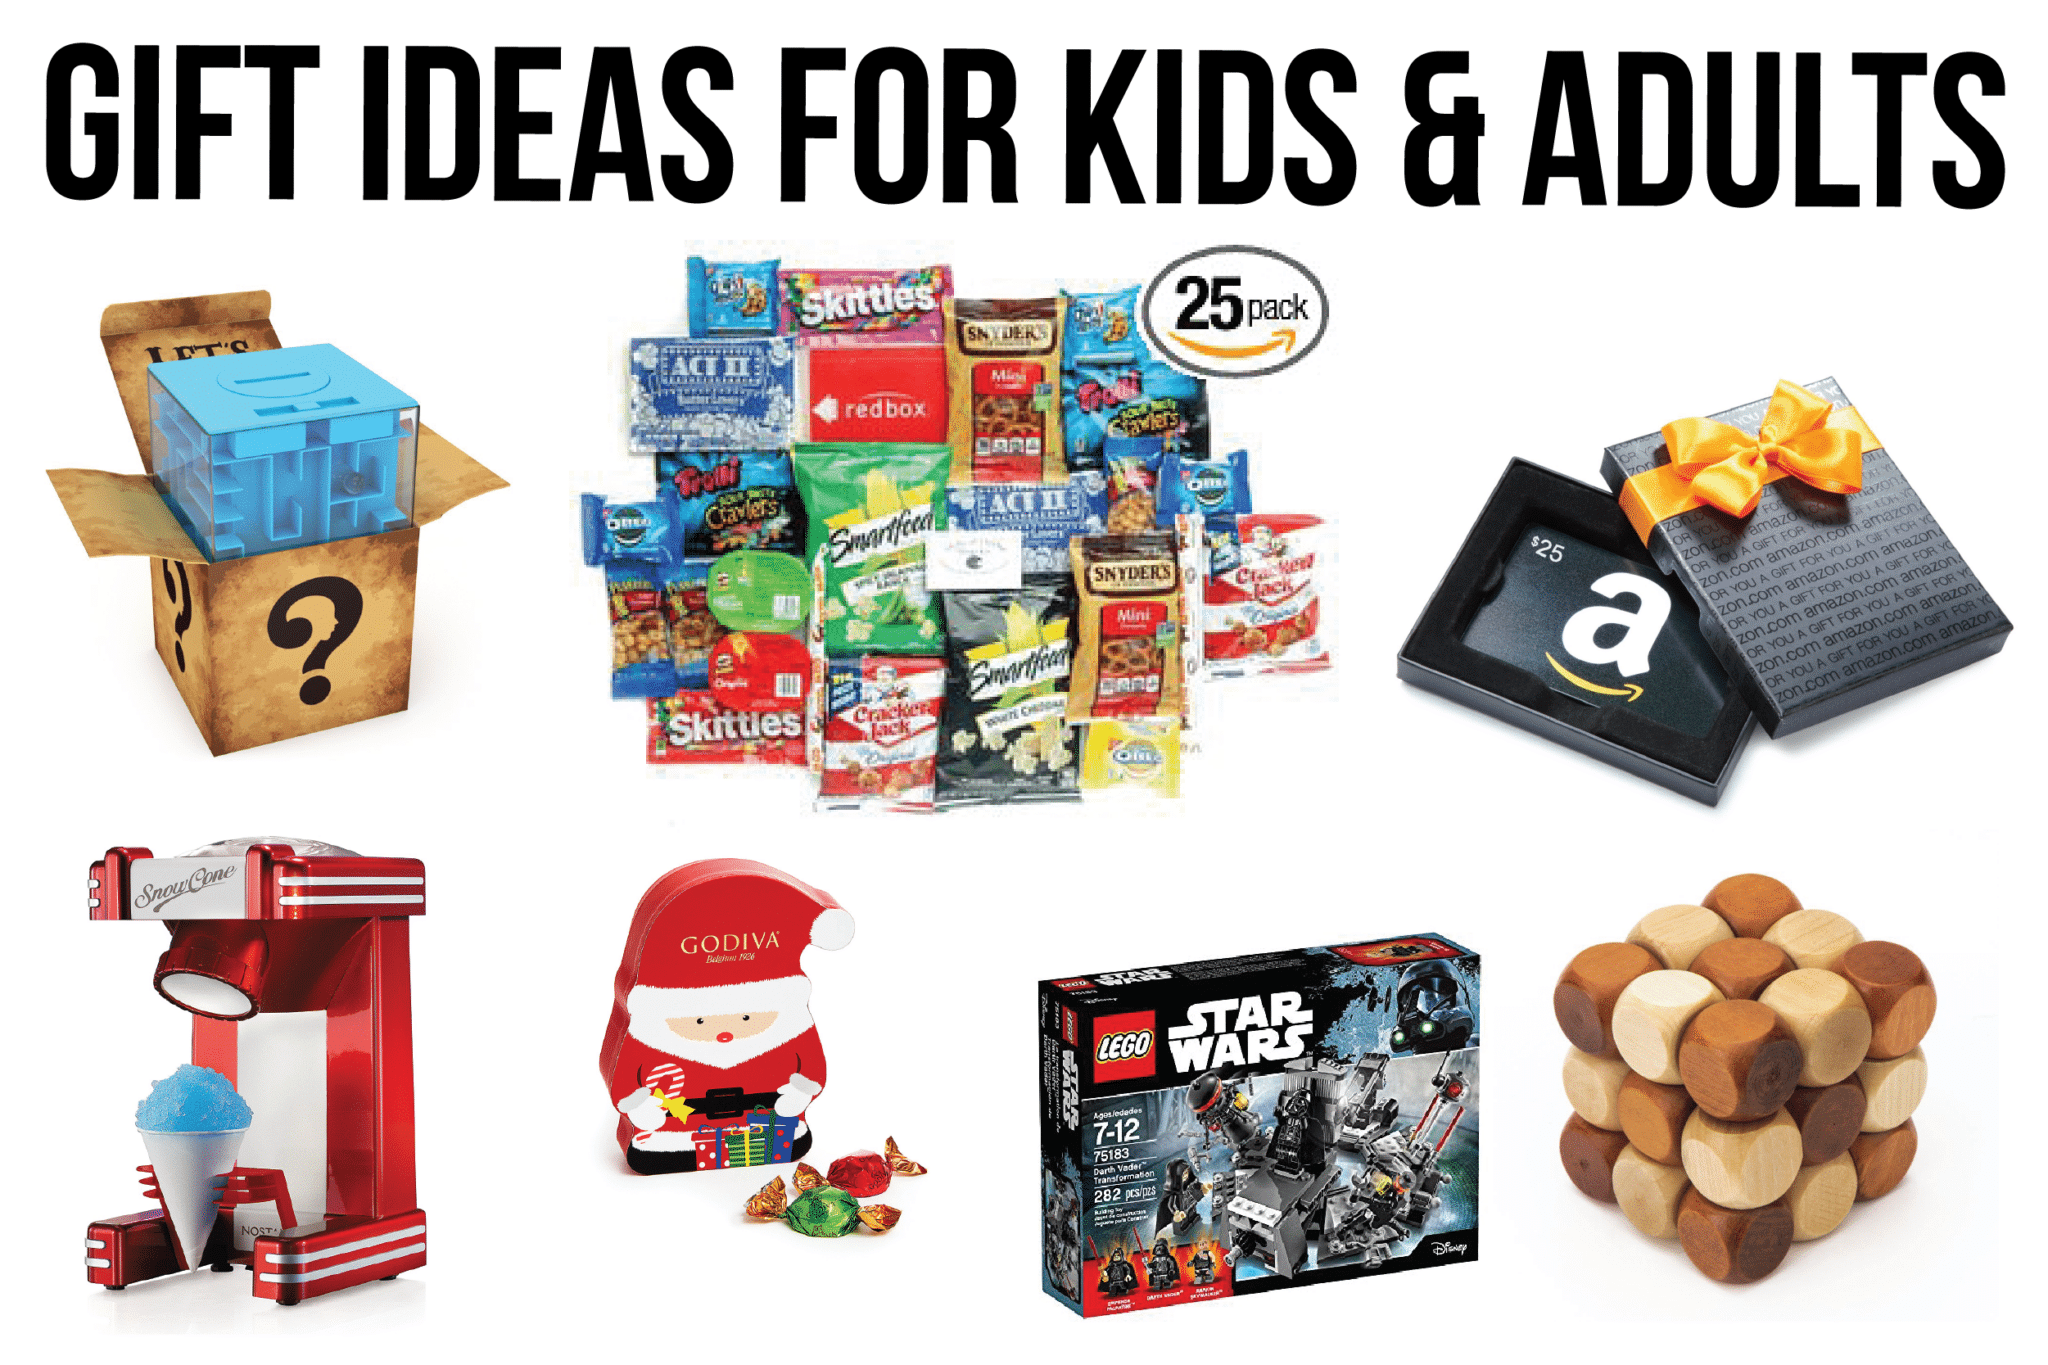 White elephant gifts and more fun gift ideas that work well for kids and adults